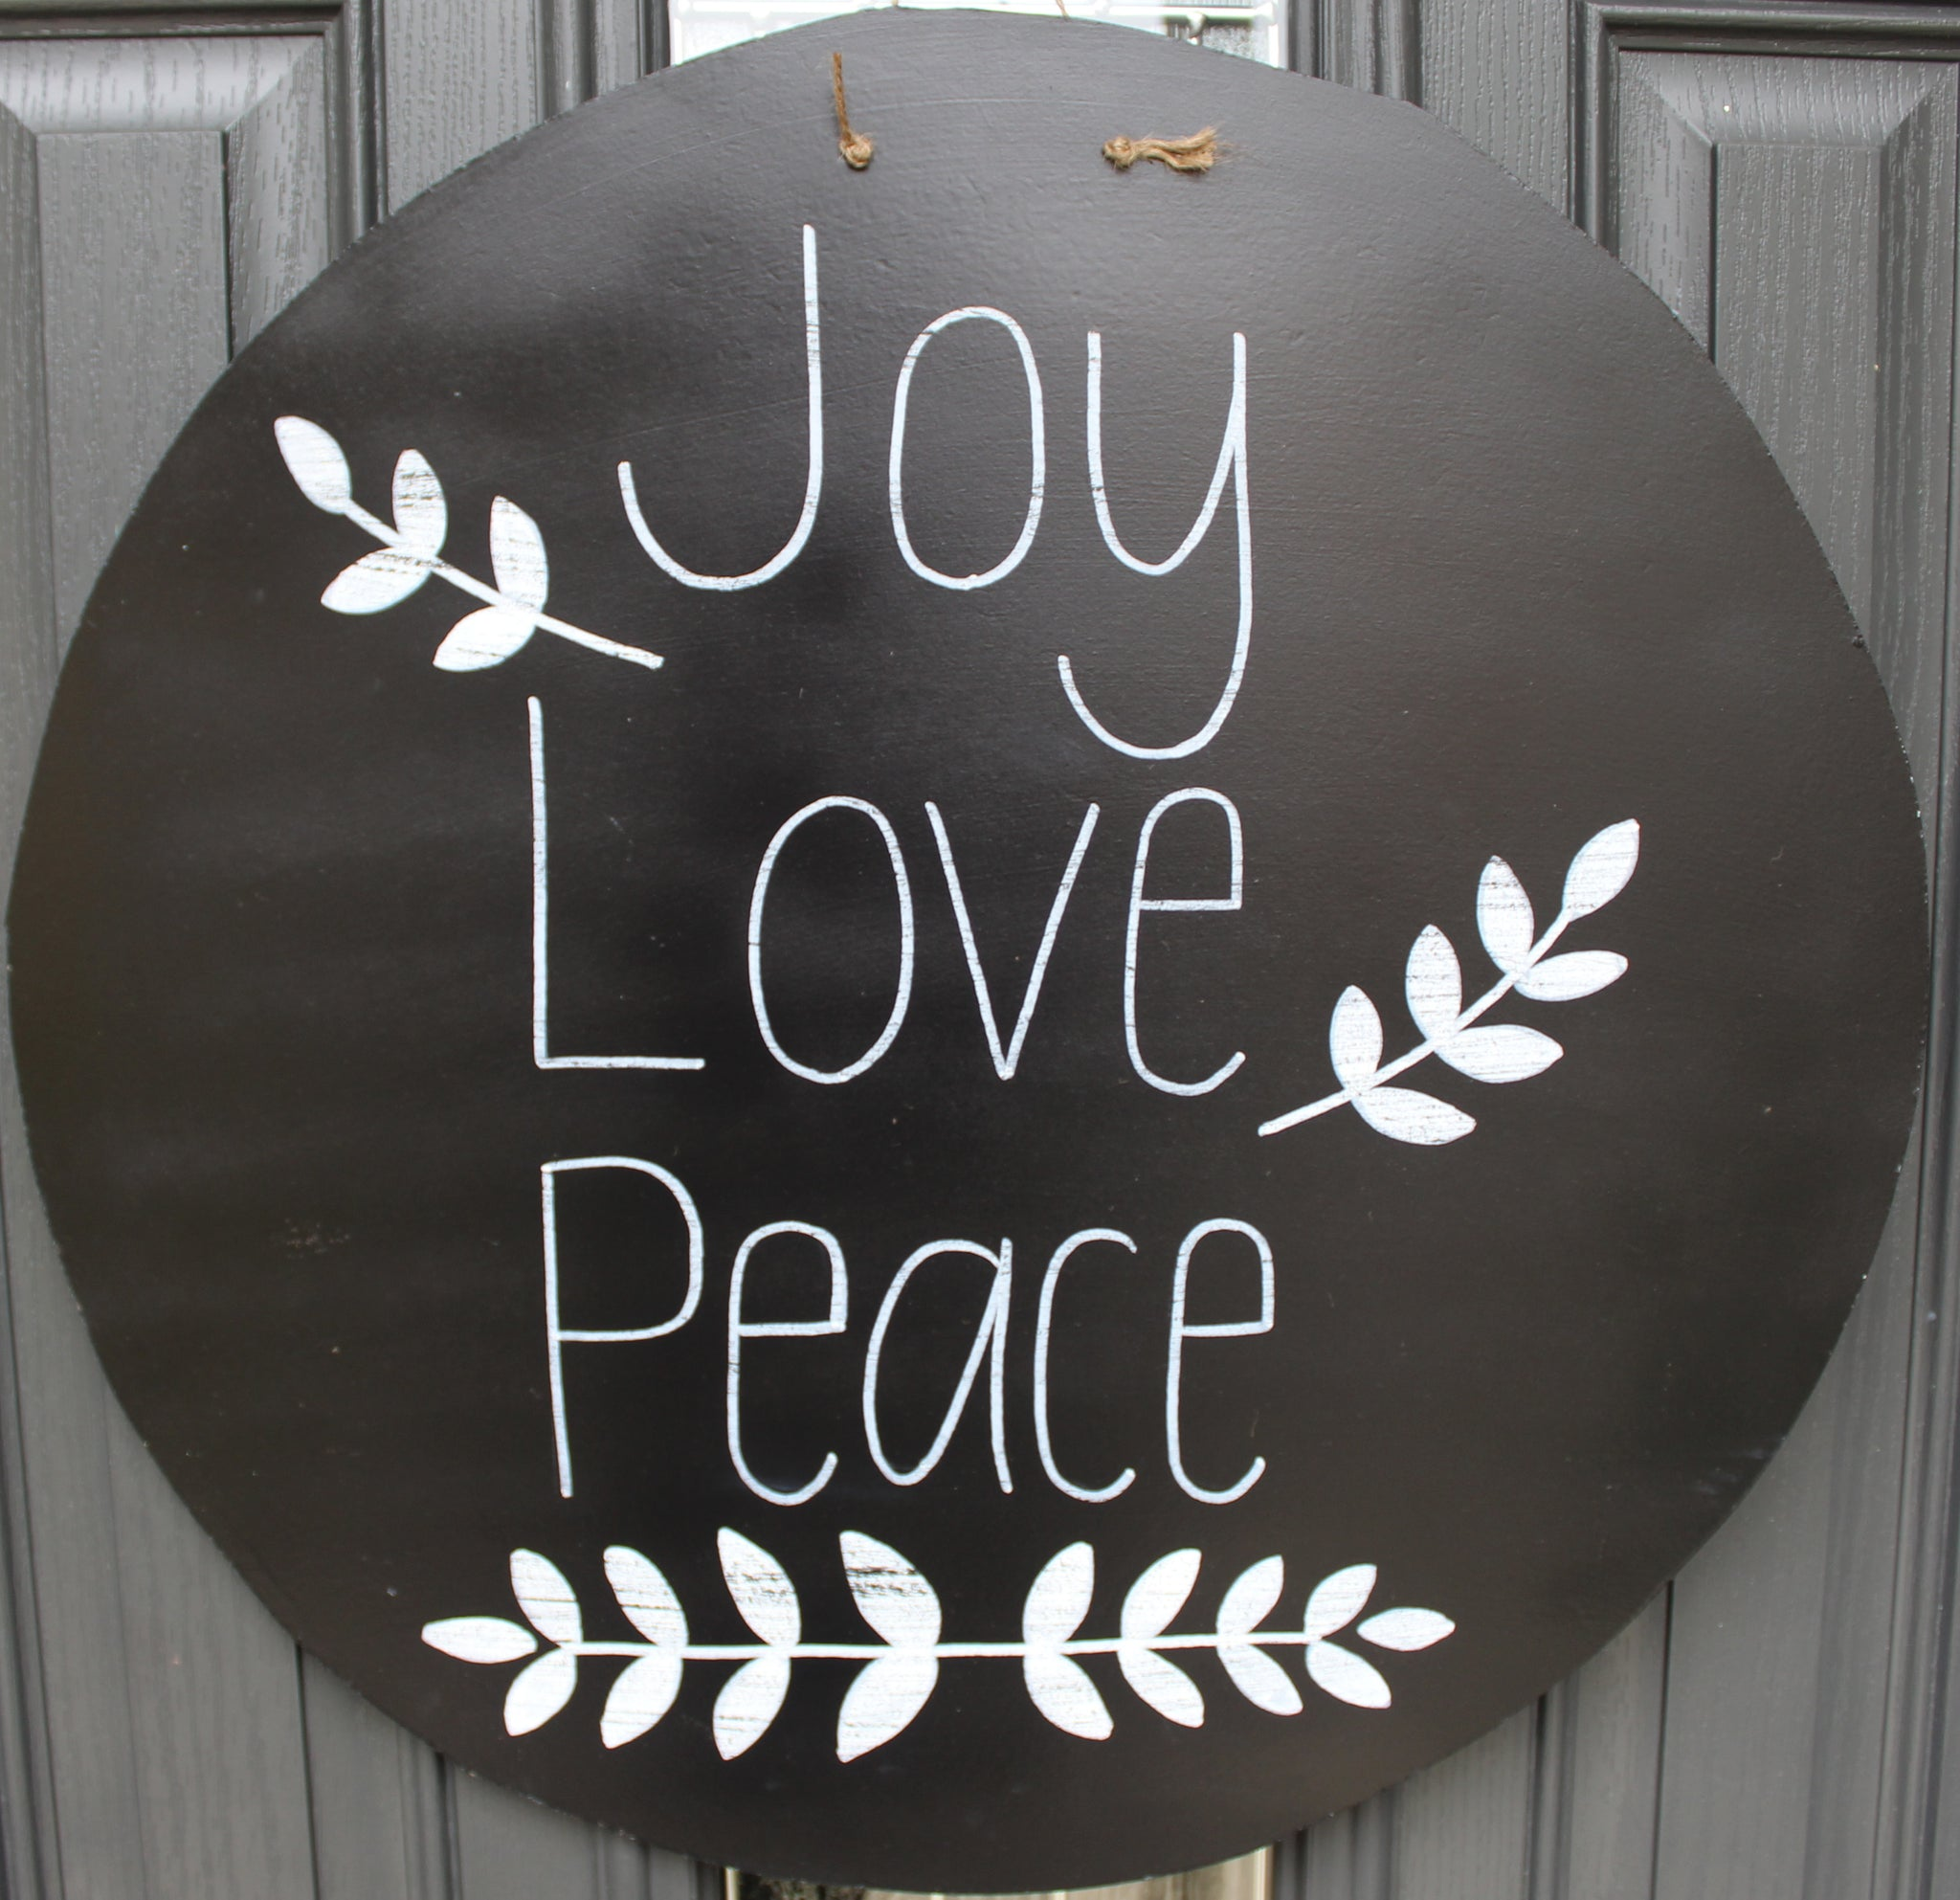 Circle -Joy Love Peace - Black